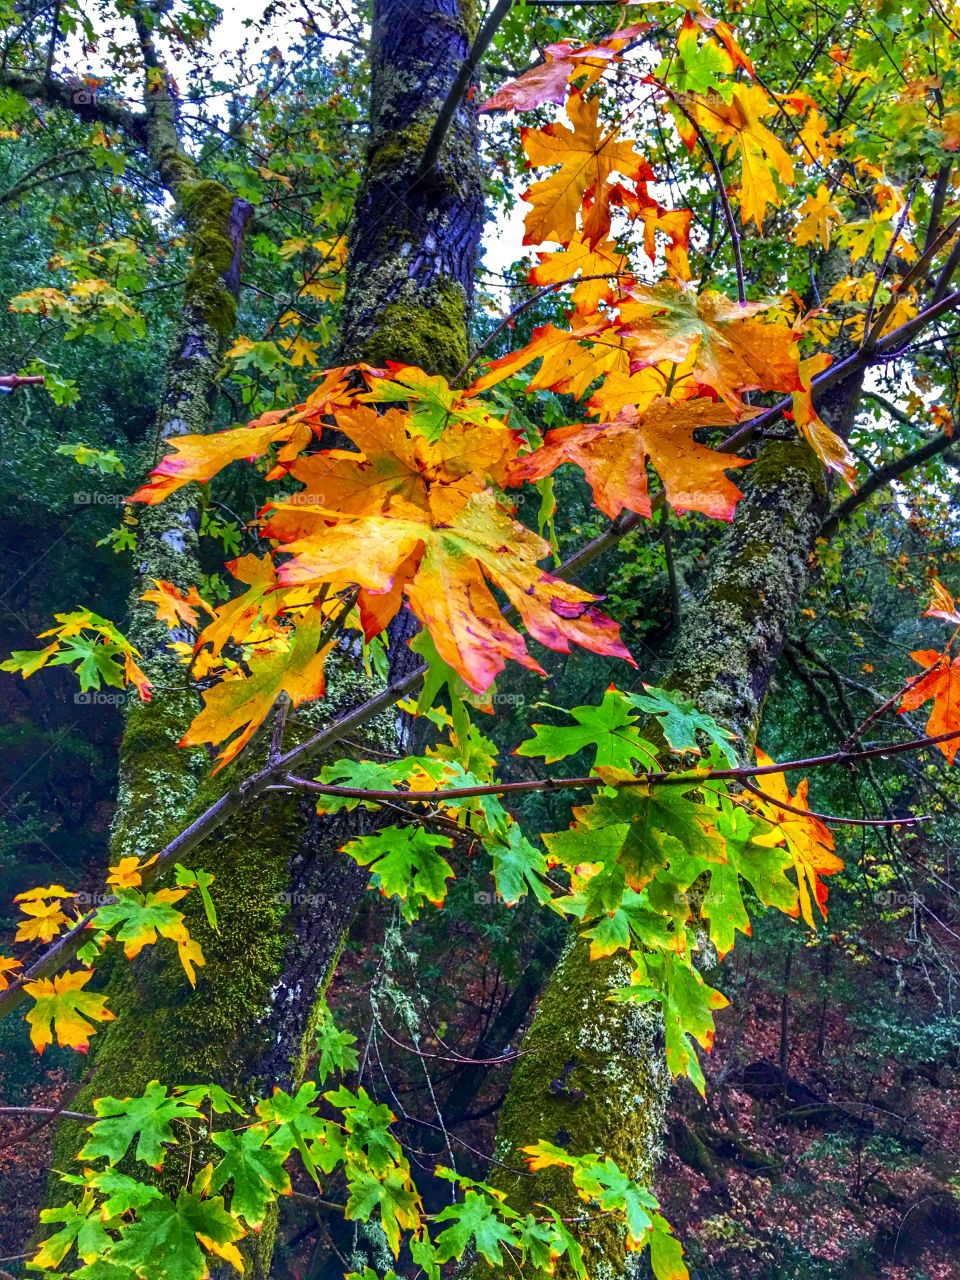 Autumn leaves and moss covered trees